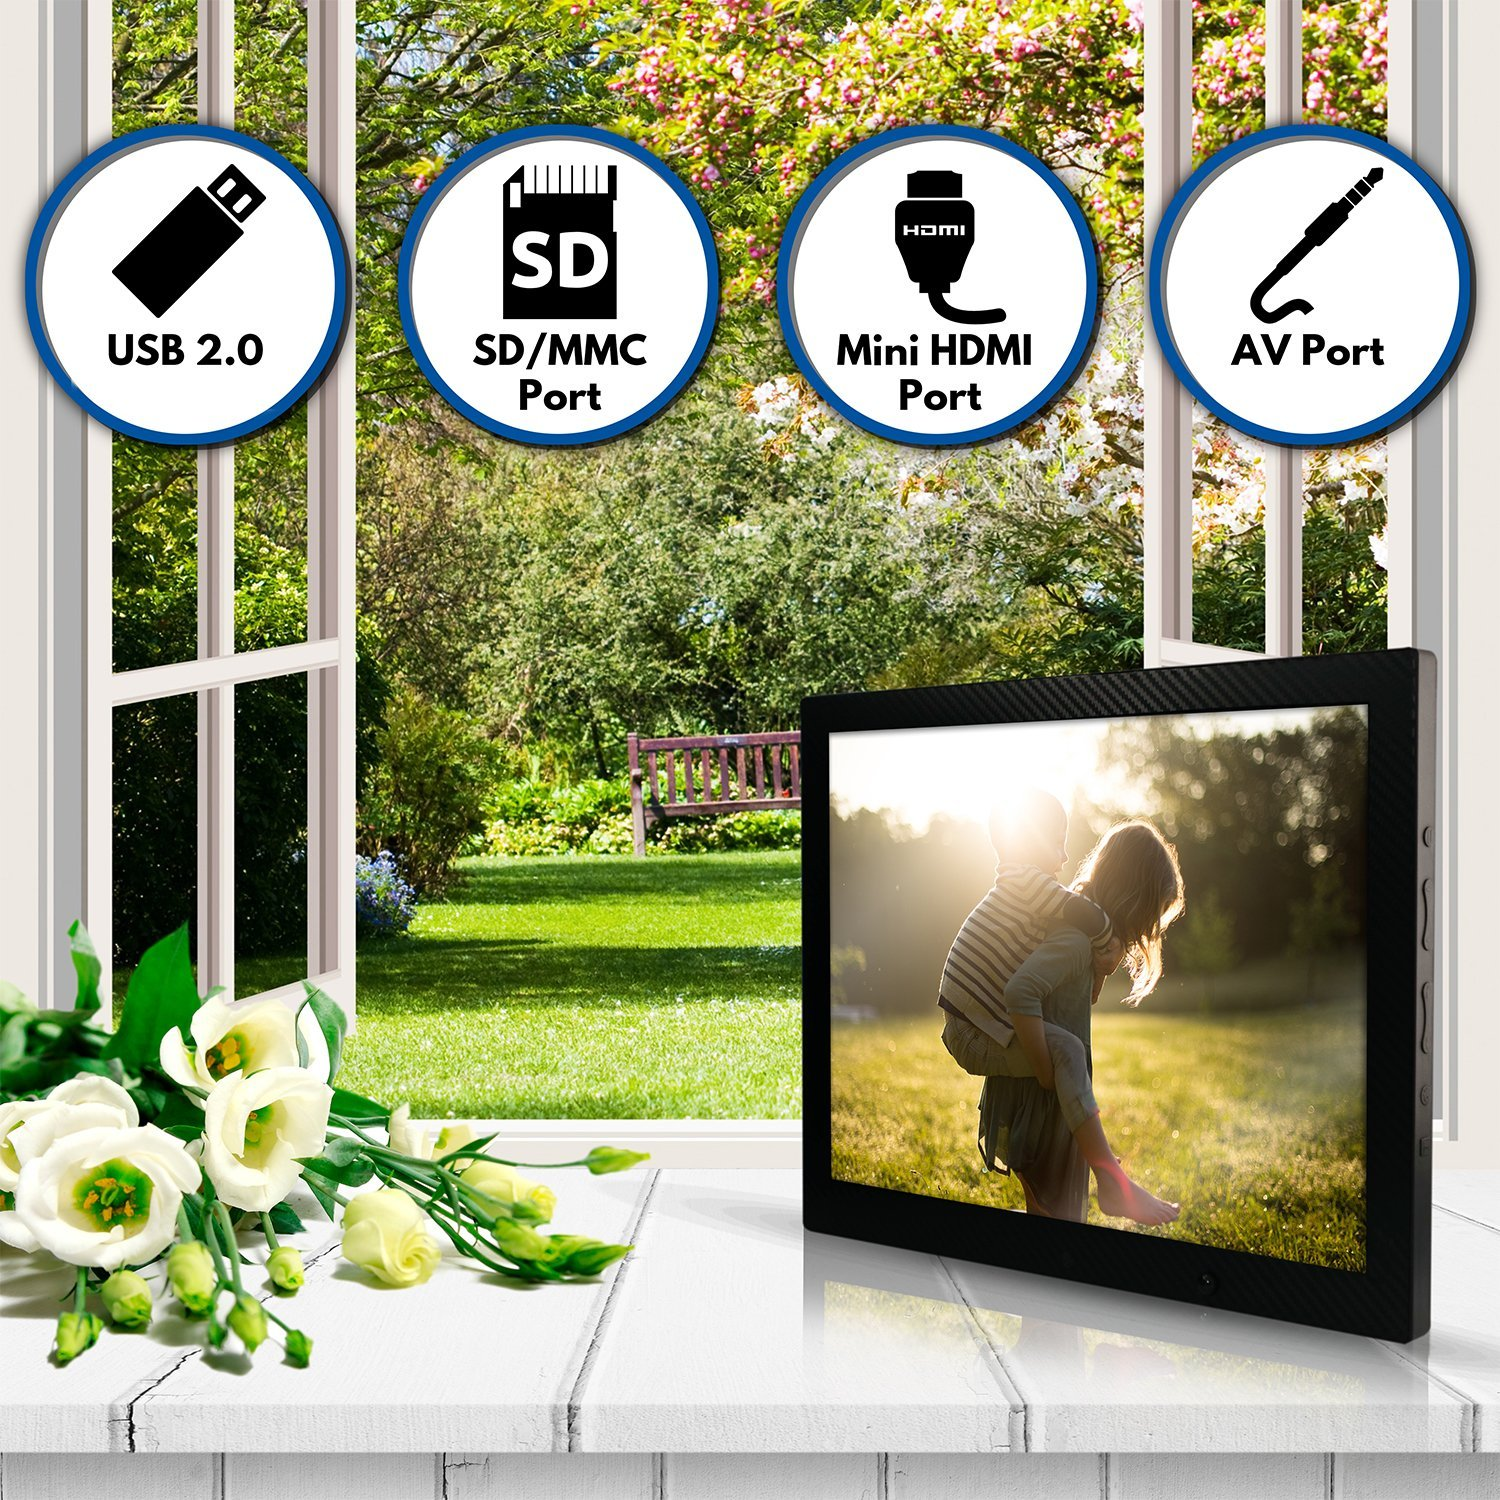 12 inch HD Digital Picture Frame Carbon Fiber - 1080p High Definition Electronic Photo Frame With Video, 16GB Memory, Motion Sensor, Built-In Speakers & Remote Control - (Black) by Spiro Goods (Image #5)